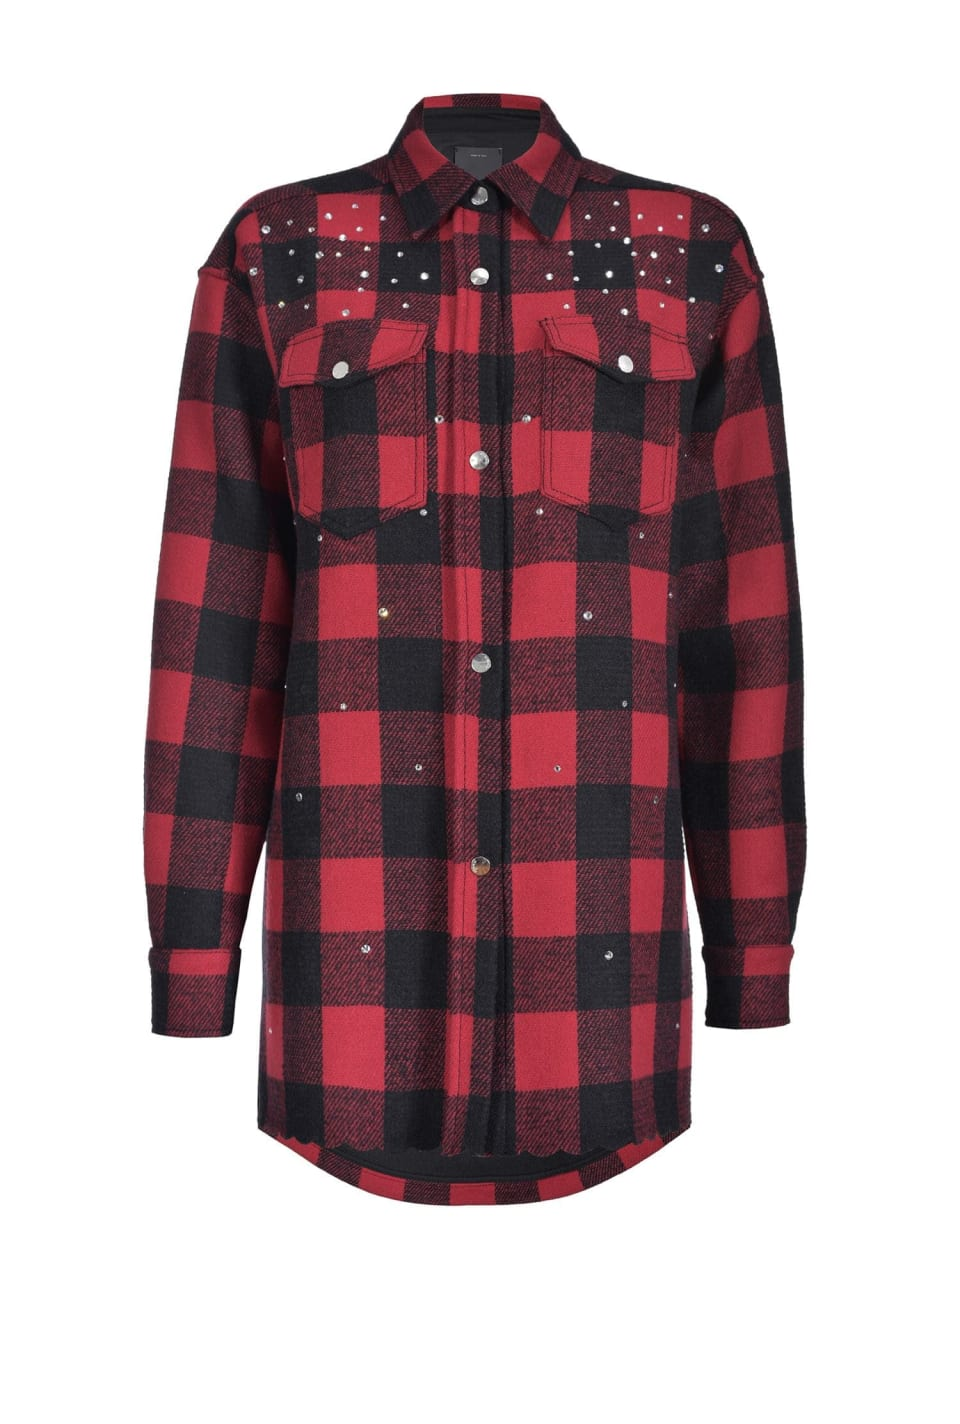 Heavy wool Melton check shirt